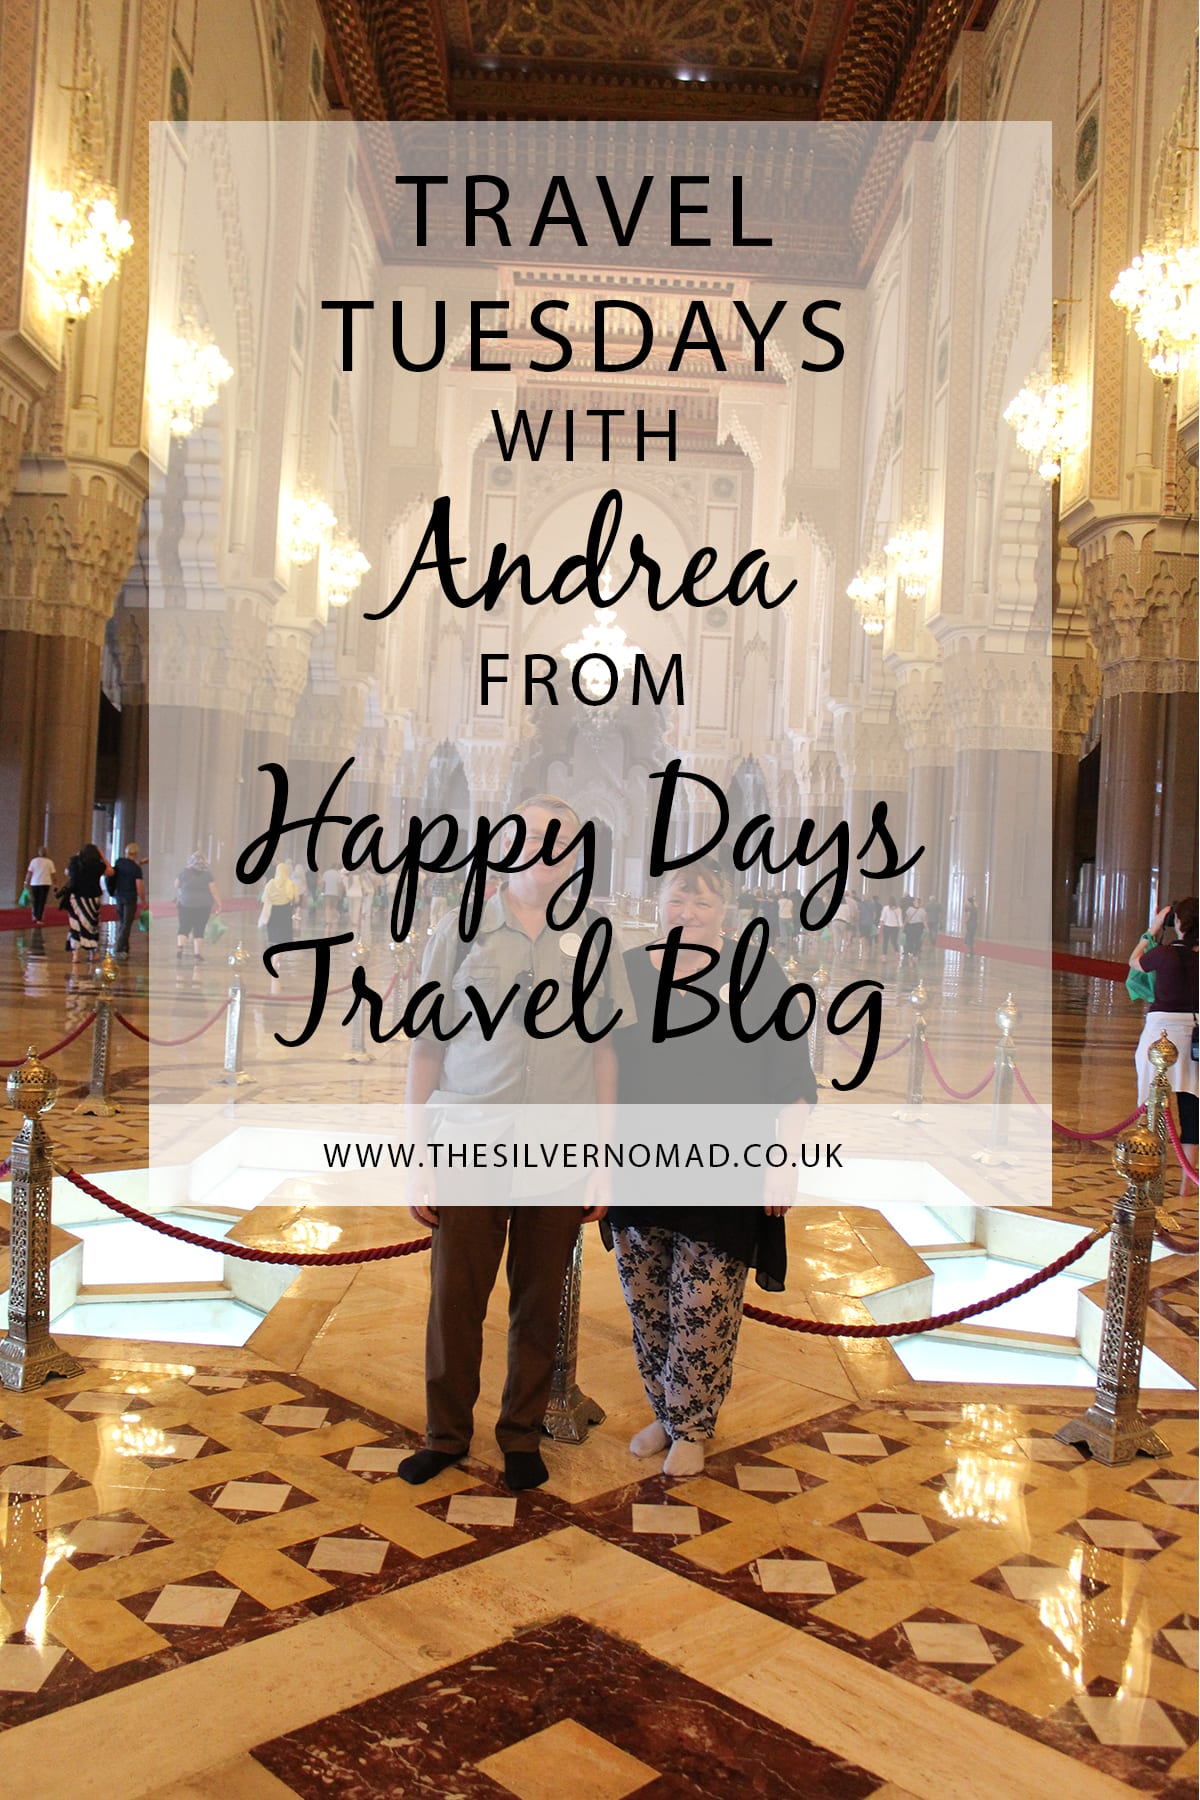 Travel Tuesday with Happy Days Travel Blog. Andrea answers questions on her travel style, tips and favourite destinations to travel to.